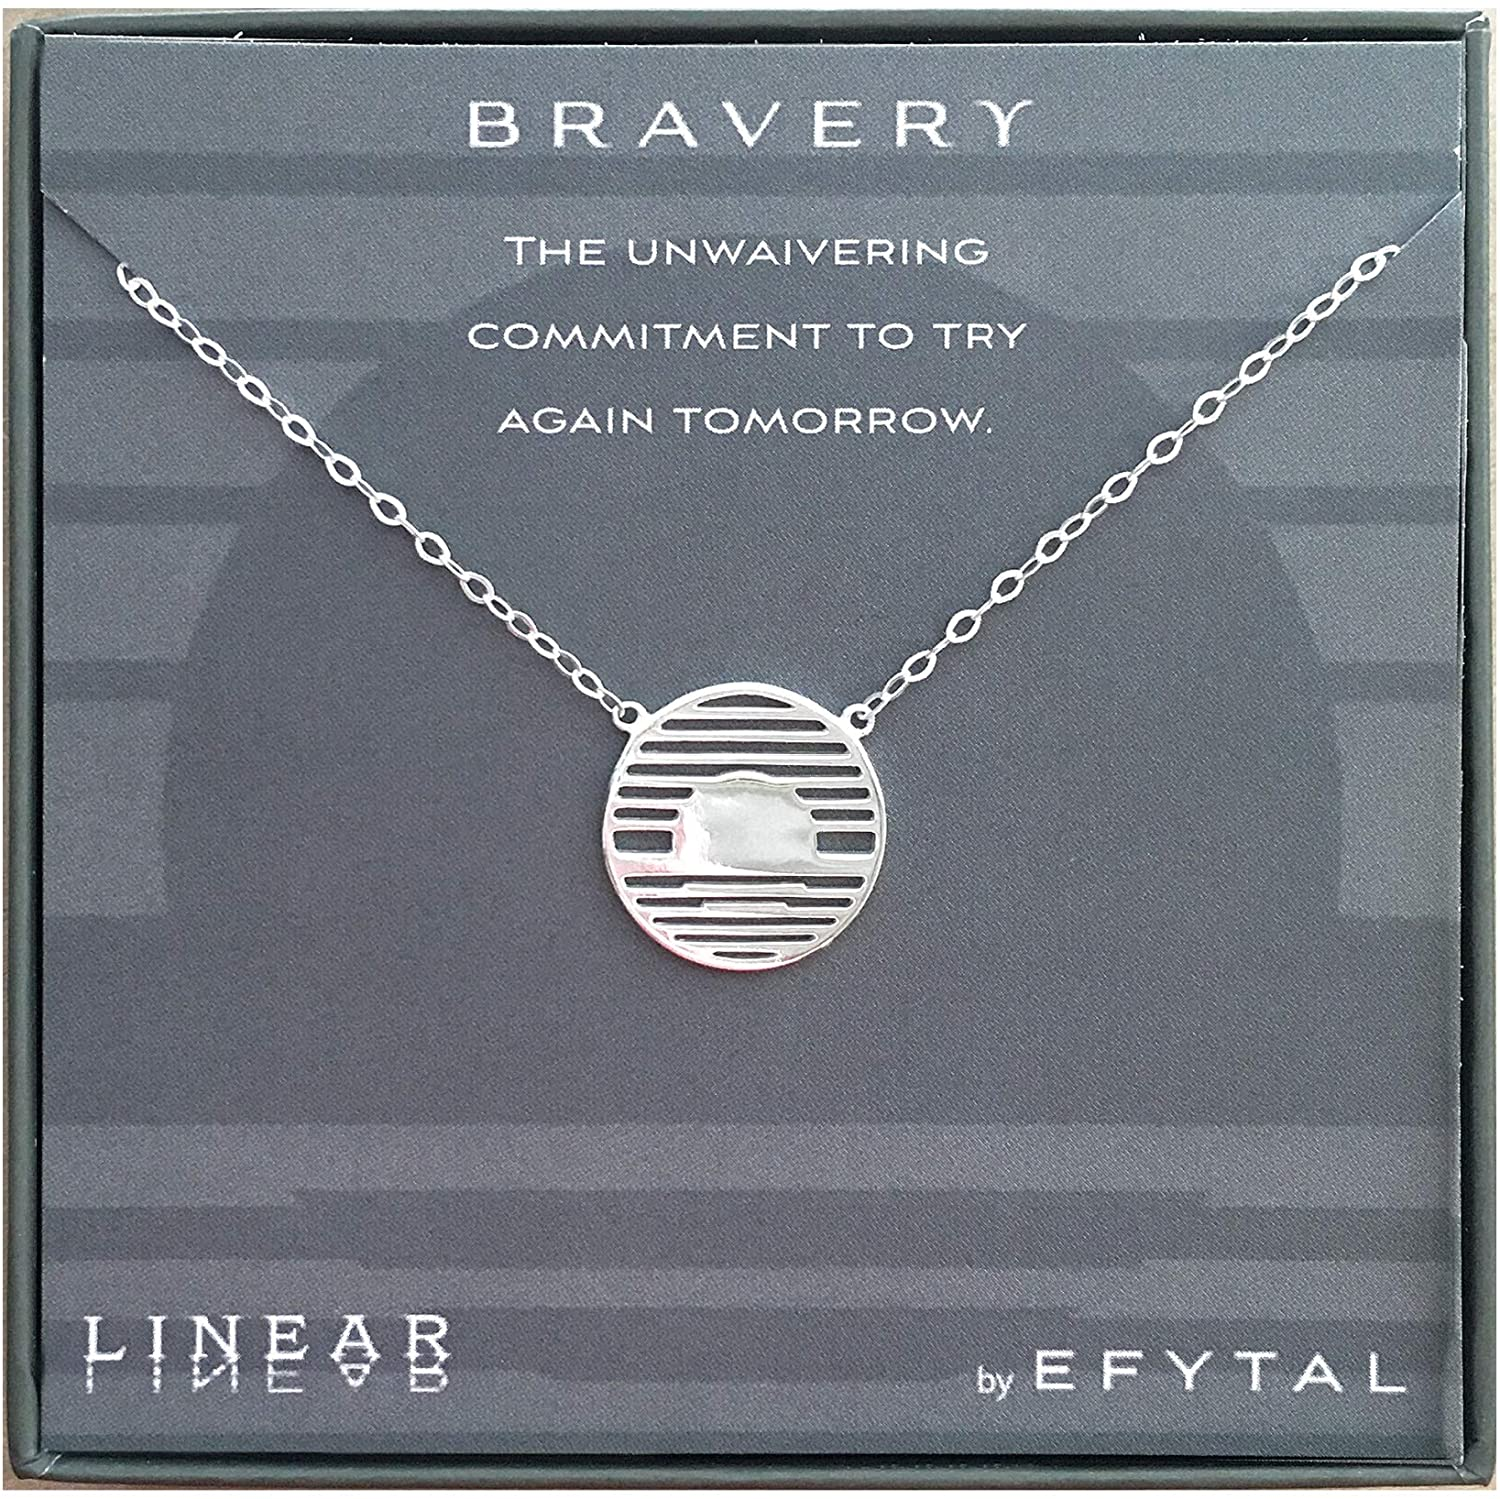 EFYTAL Inspirational Gifts, 925 Sterling Silver Bravery Linear Necklace, Geometric Pendant Jewelry for Women, Motivational Gift Ideas for Her, Best Friend